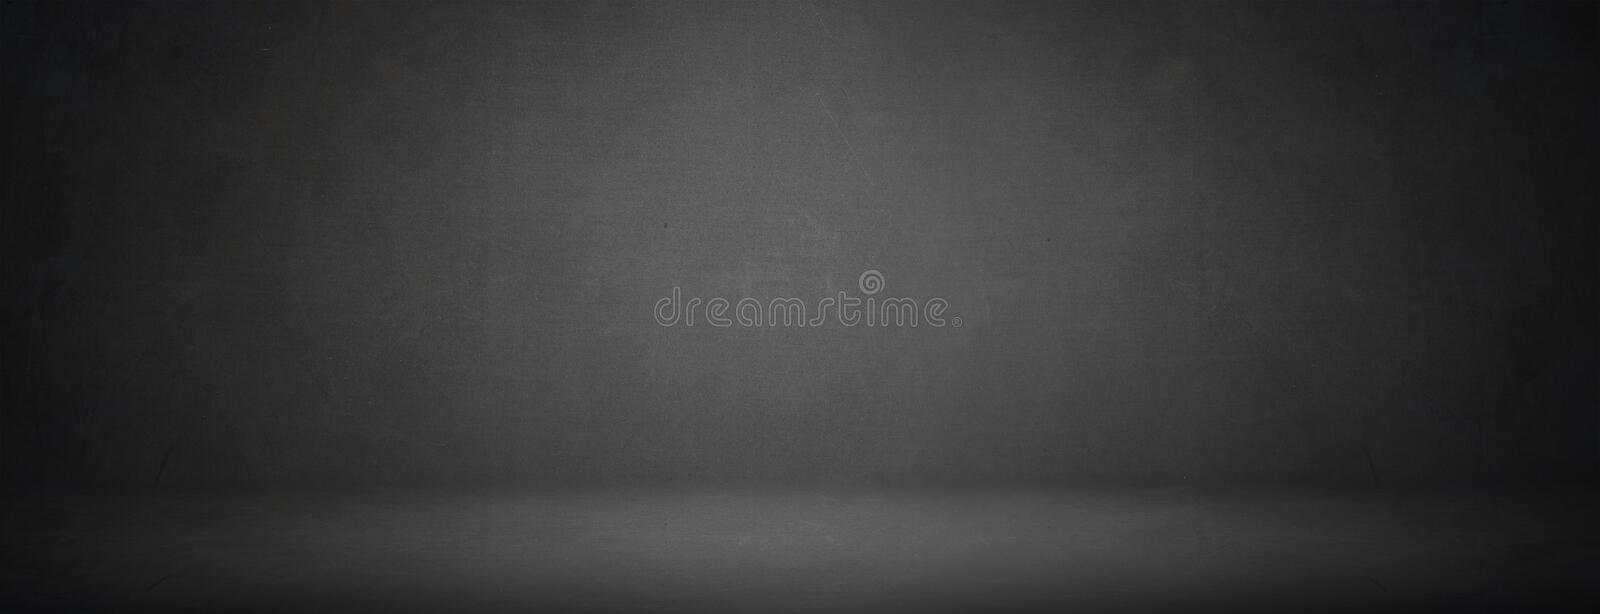 Simple black studio of chalkboard texture for showroom background stock photography